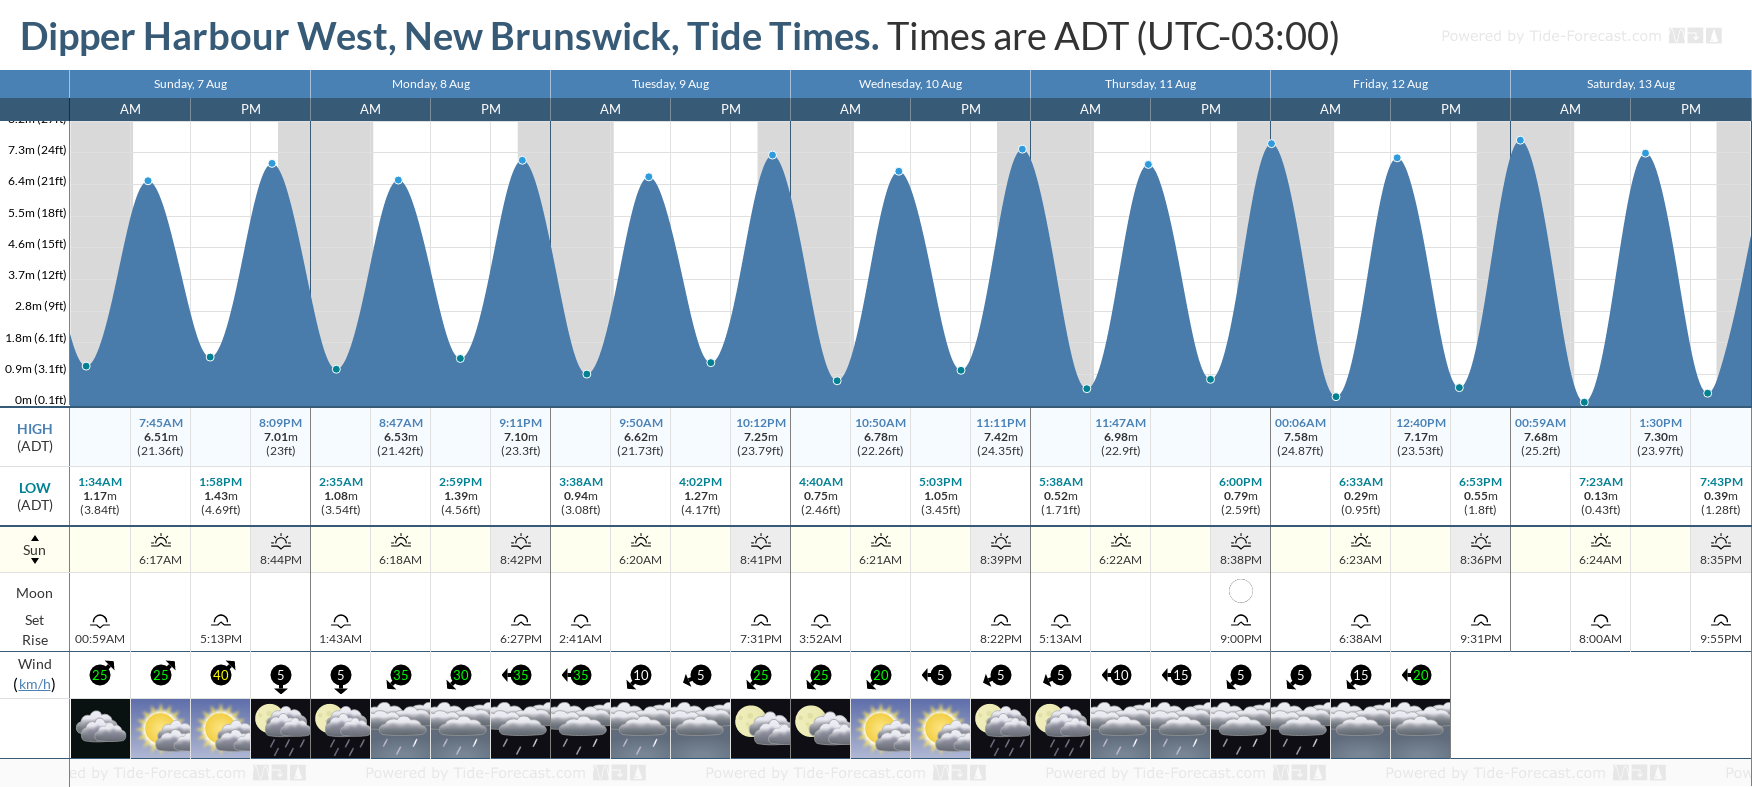 Dipper Harbour West, New Brunswick Tide Chart including high and low tide tide times for the next 7 days